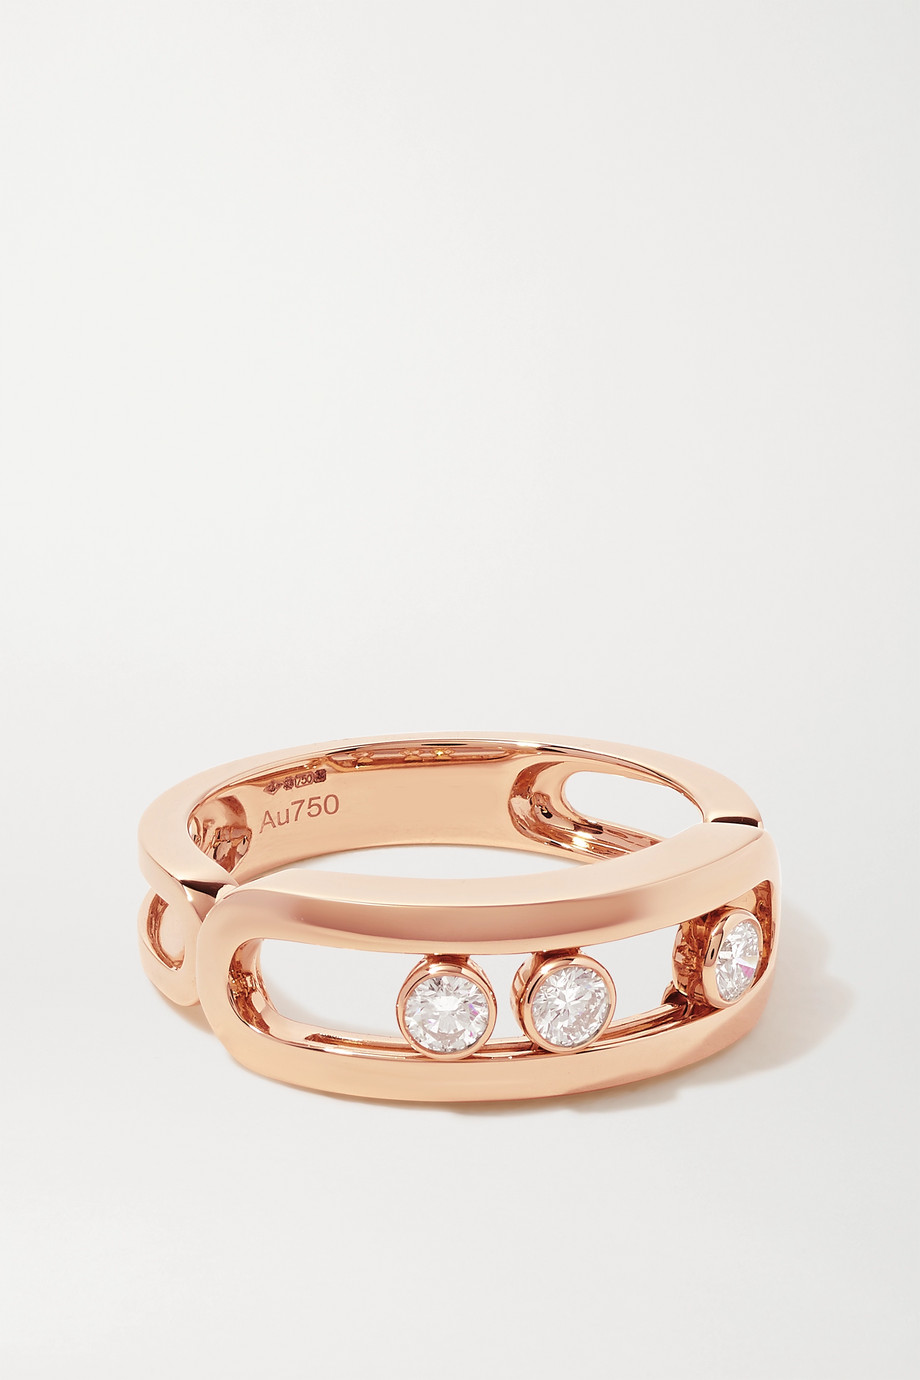 Messika Move Classic Ring aus 18 Karat Roségold mit Diamanten